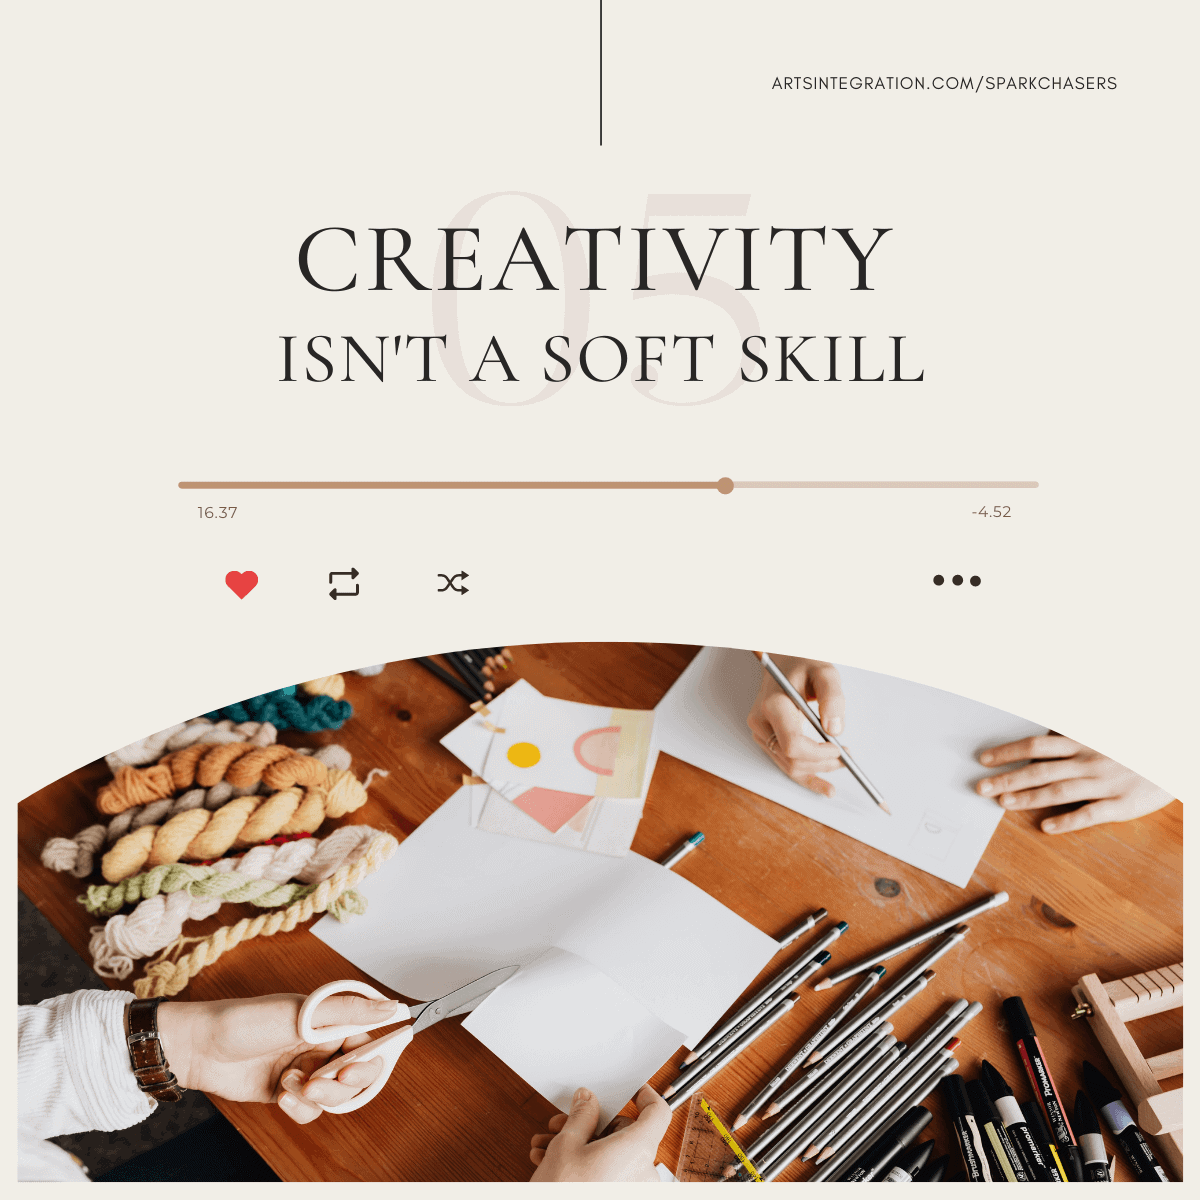 Creativity isn't a soft skill